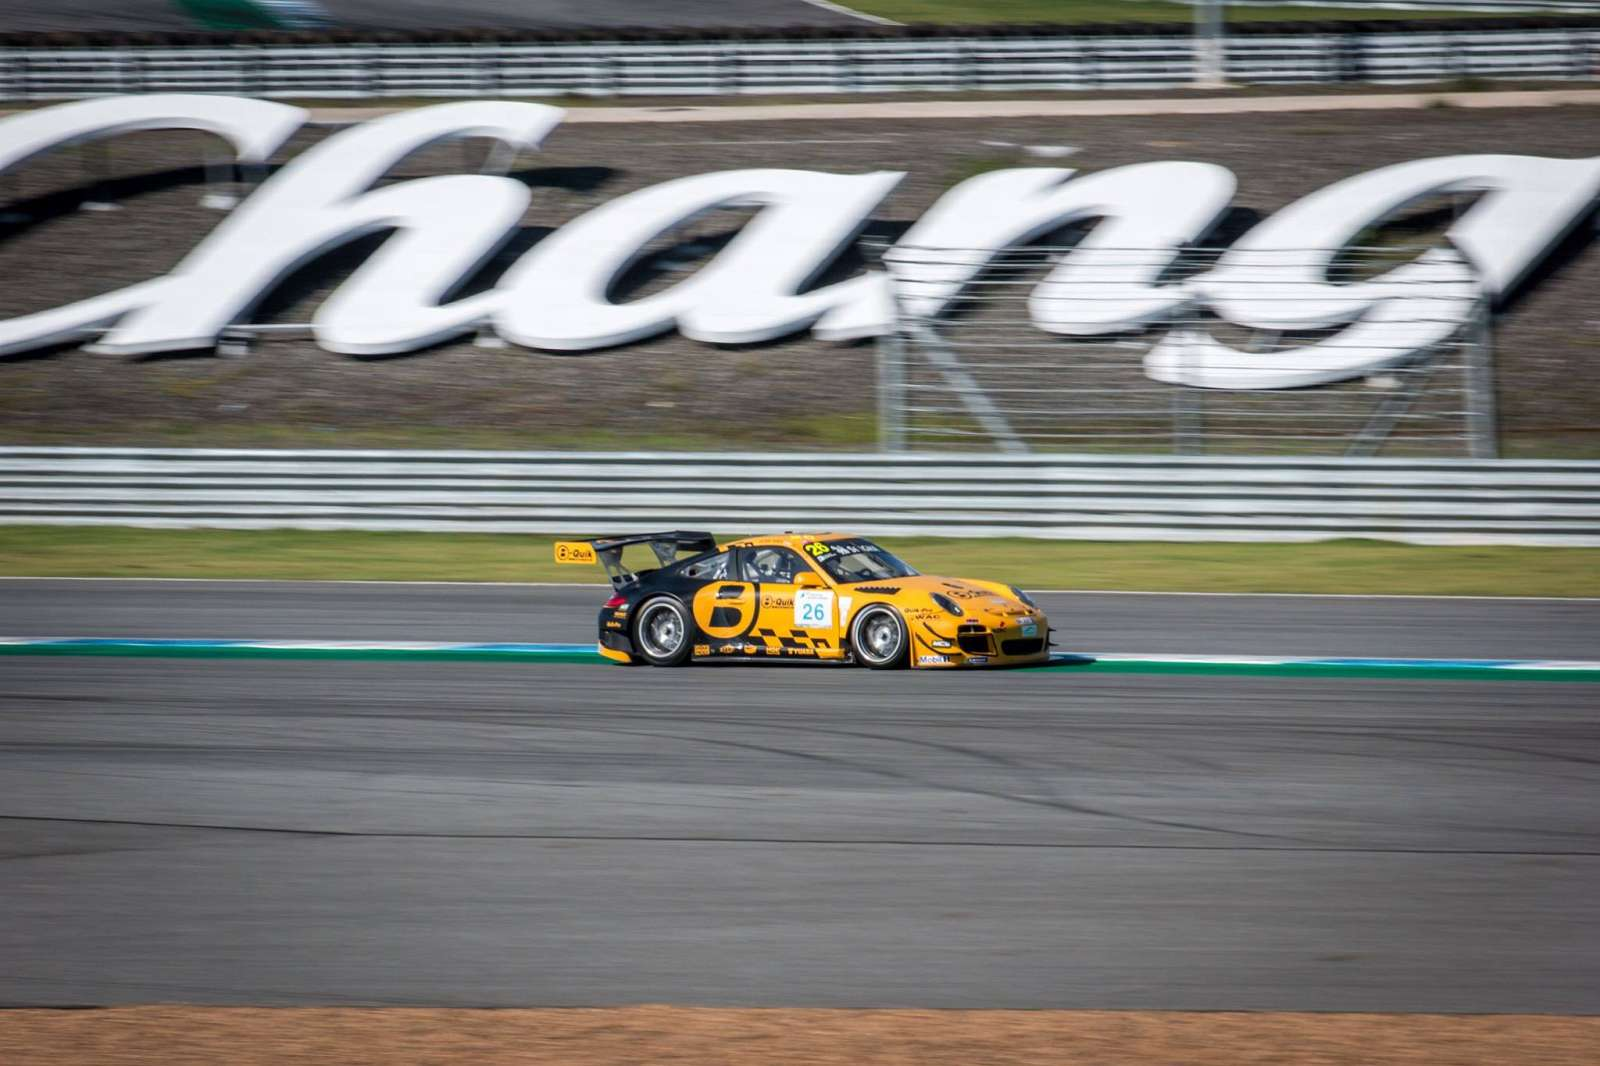 peter-kox-championship-winning-weekend-for-B-QUIK-in-buriram-21